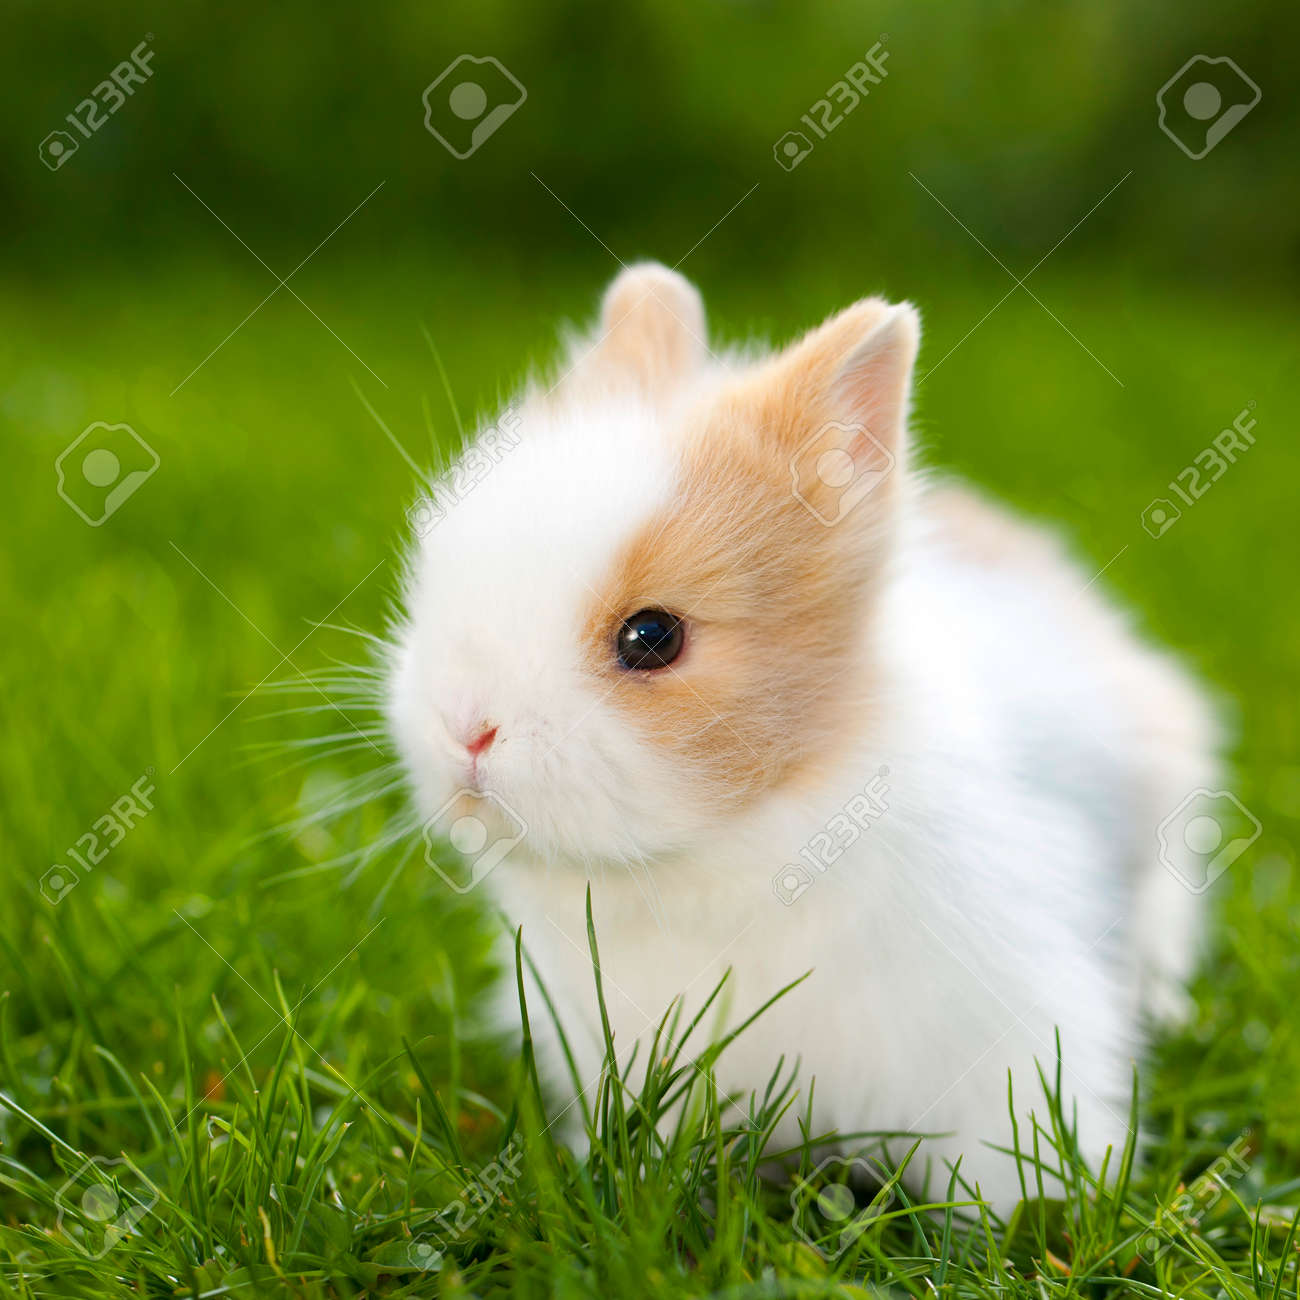 Image of: Bunny Baby Rabbit Sitting In Grassland Stock Photo 28184417 123rfcom Baby Rabbit Sitting In Grassland Stock Photo Picture And Royalty